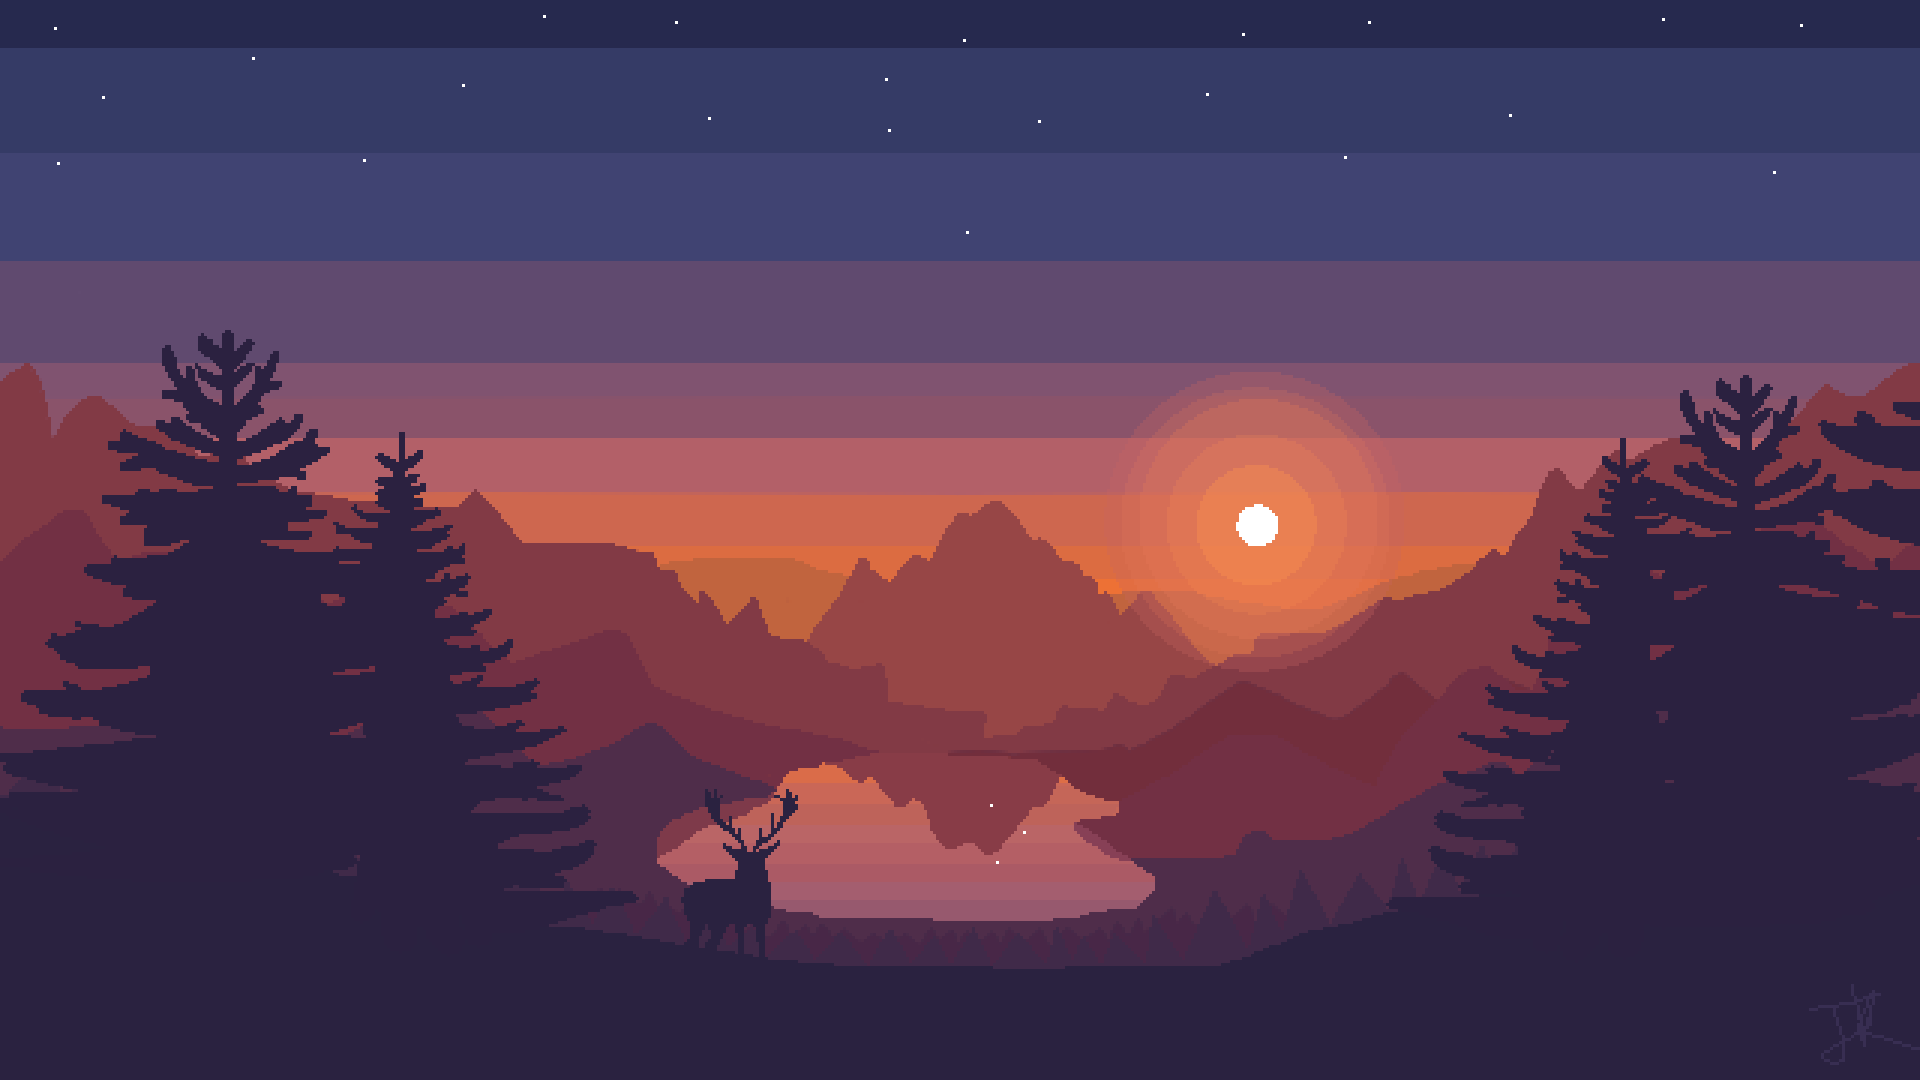 Firewatch Pixel Art 1920x1080 Need iPhone 6S Plus